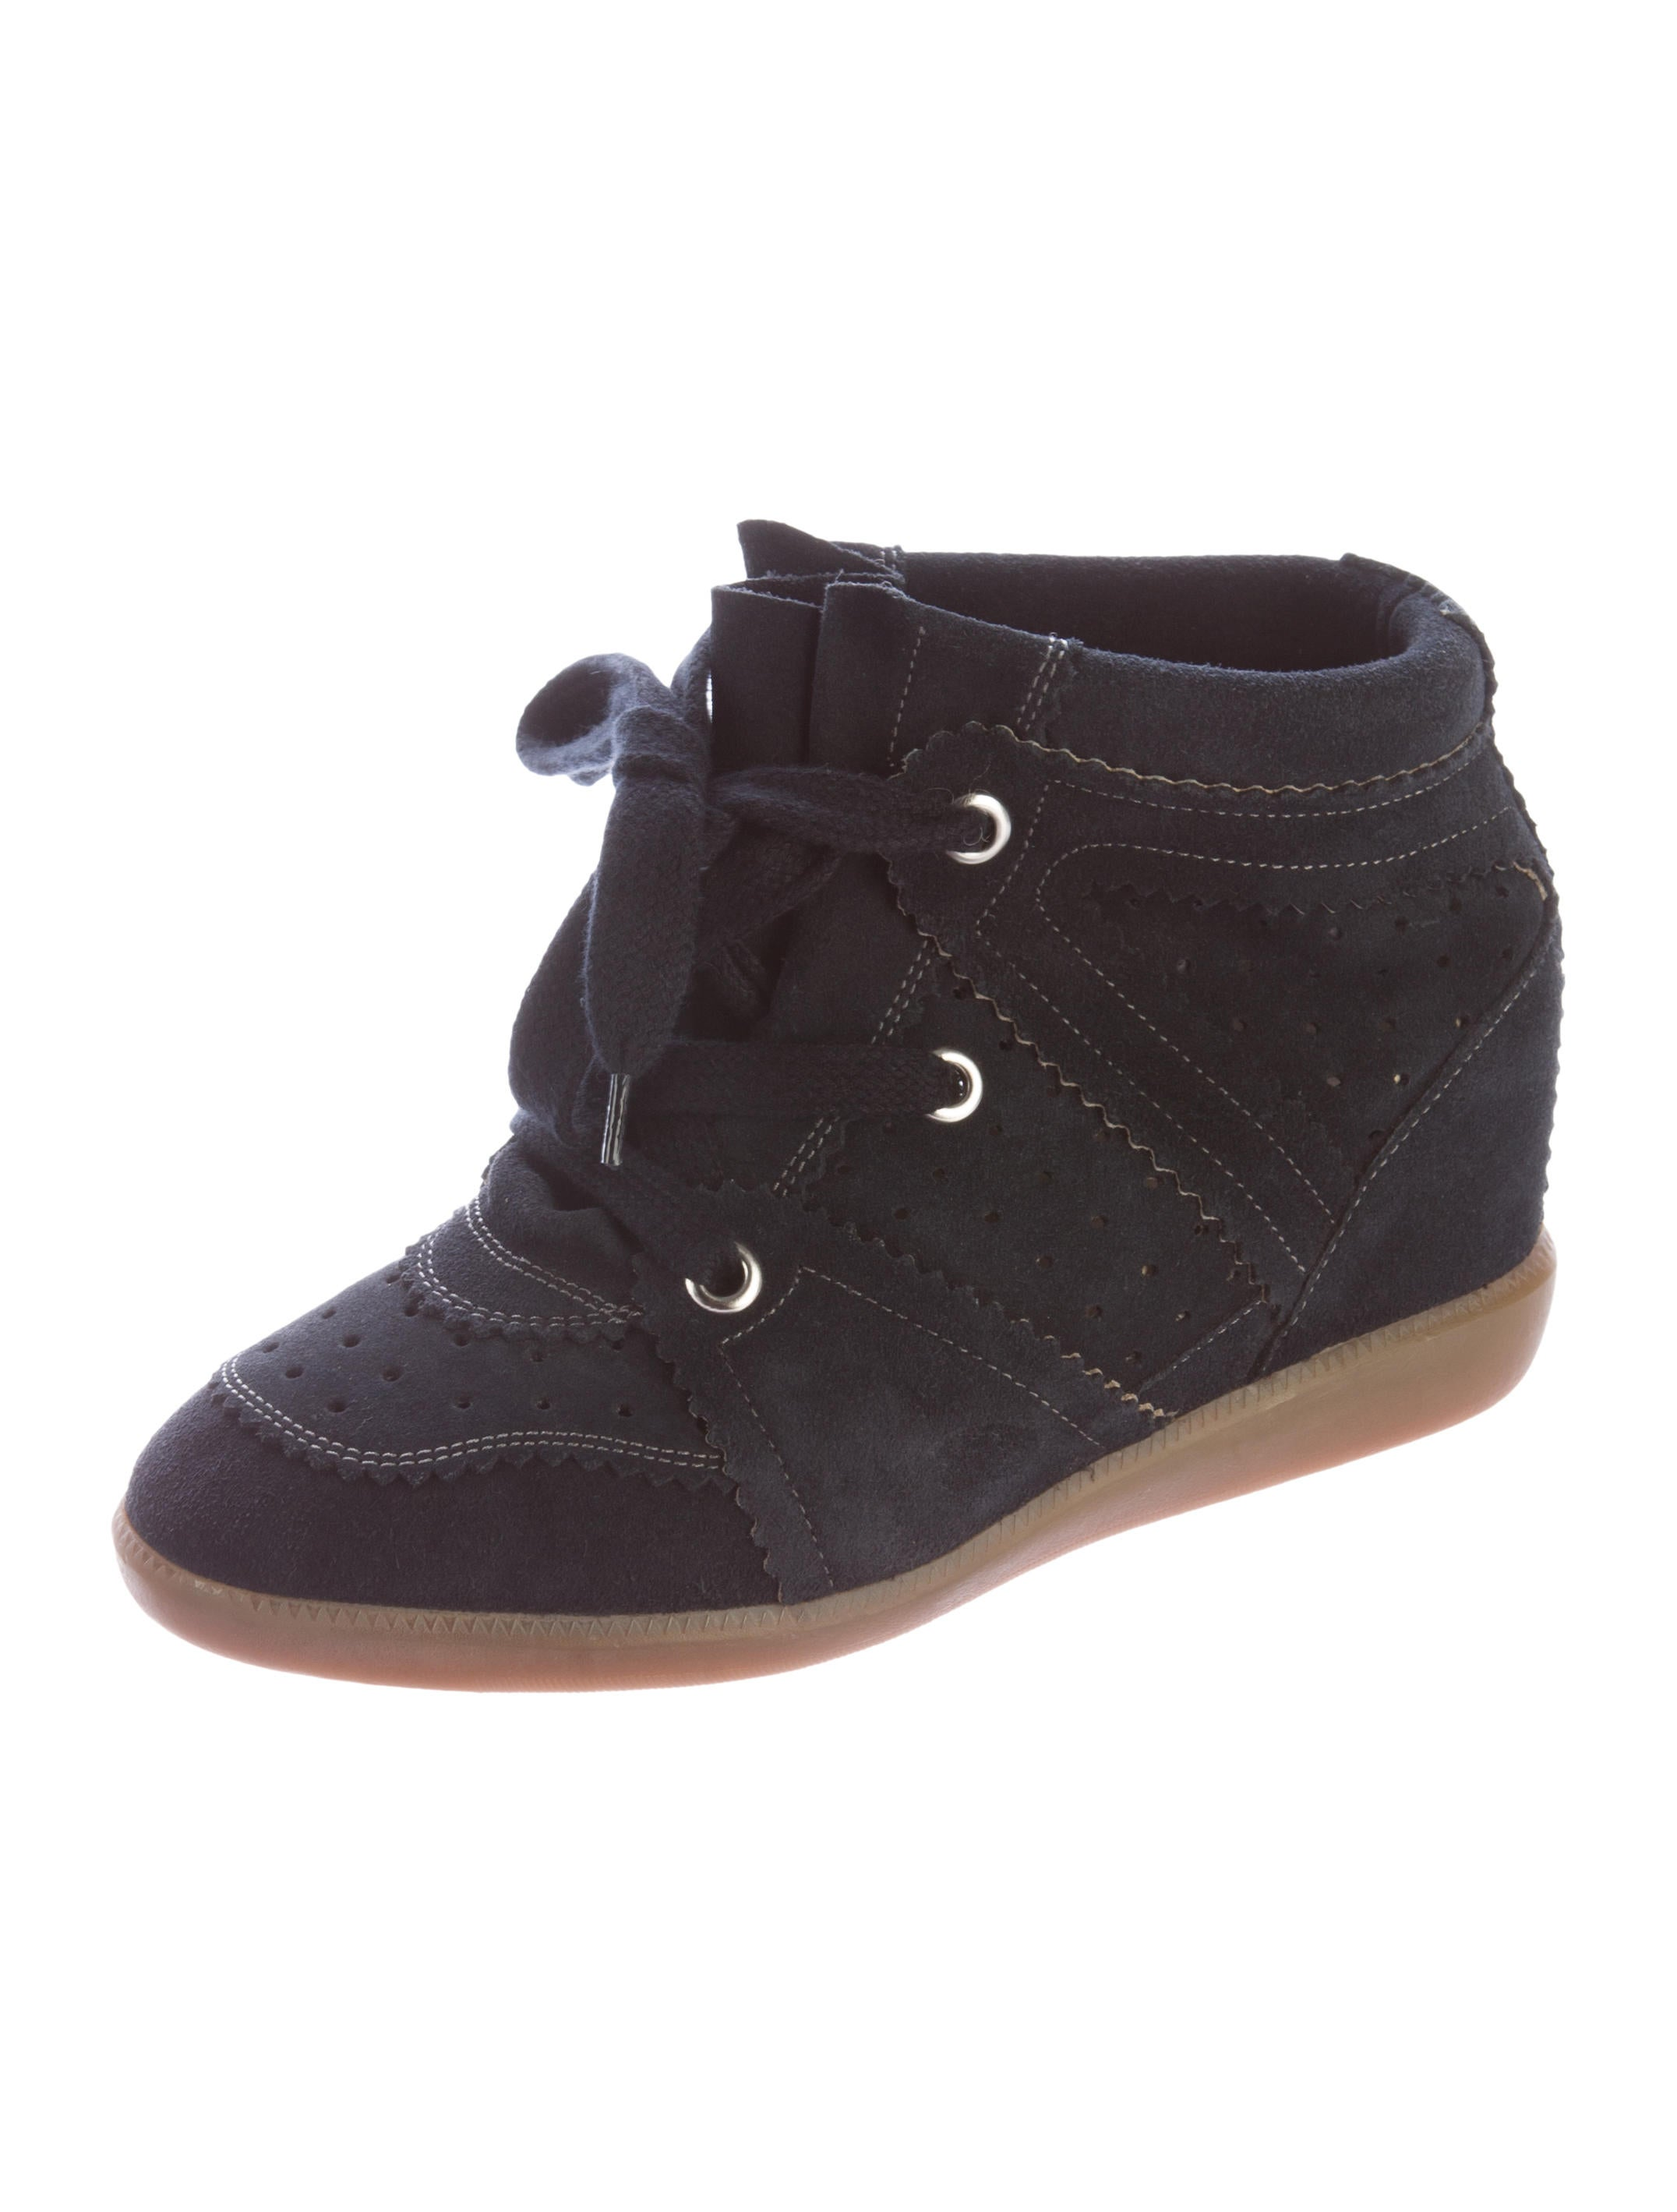 isabel marant bobby wedge sneakers shoes isa36148 the realreal. Black Bedroom Furniture Sets. Home Design Ideas